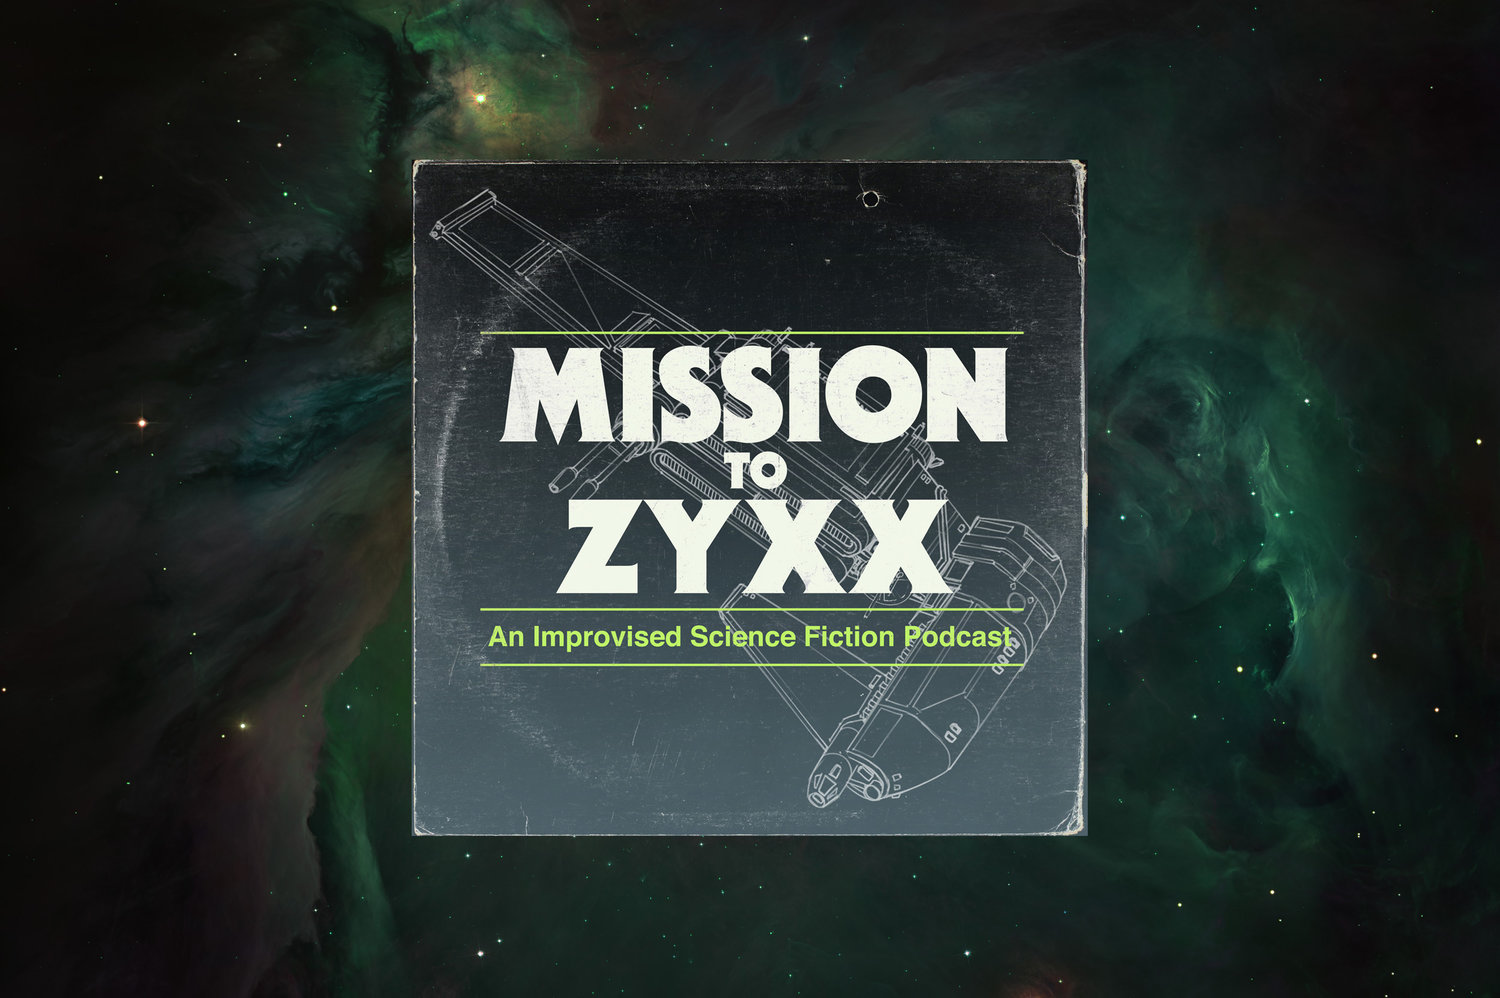 Season 1 — Mission to Zyxx